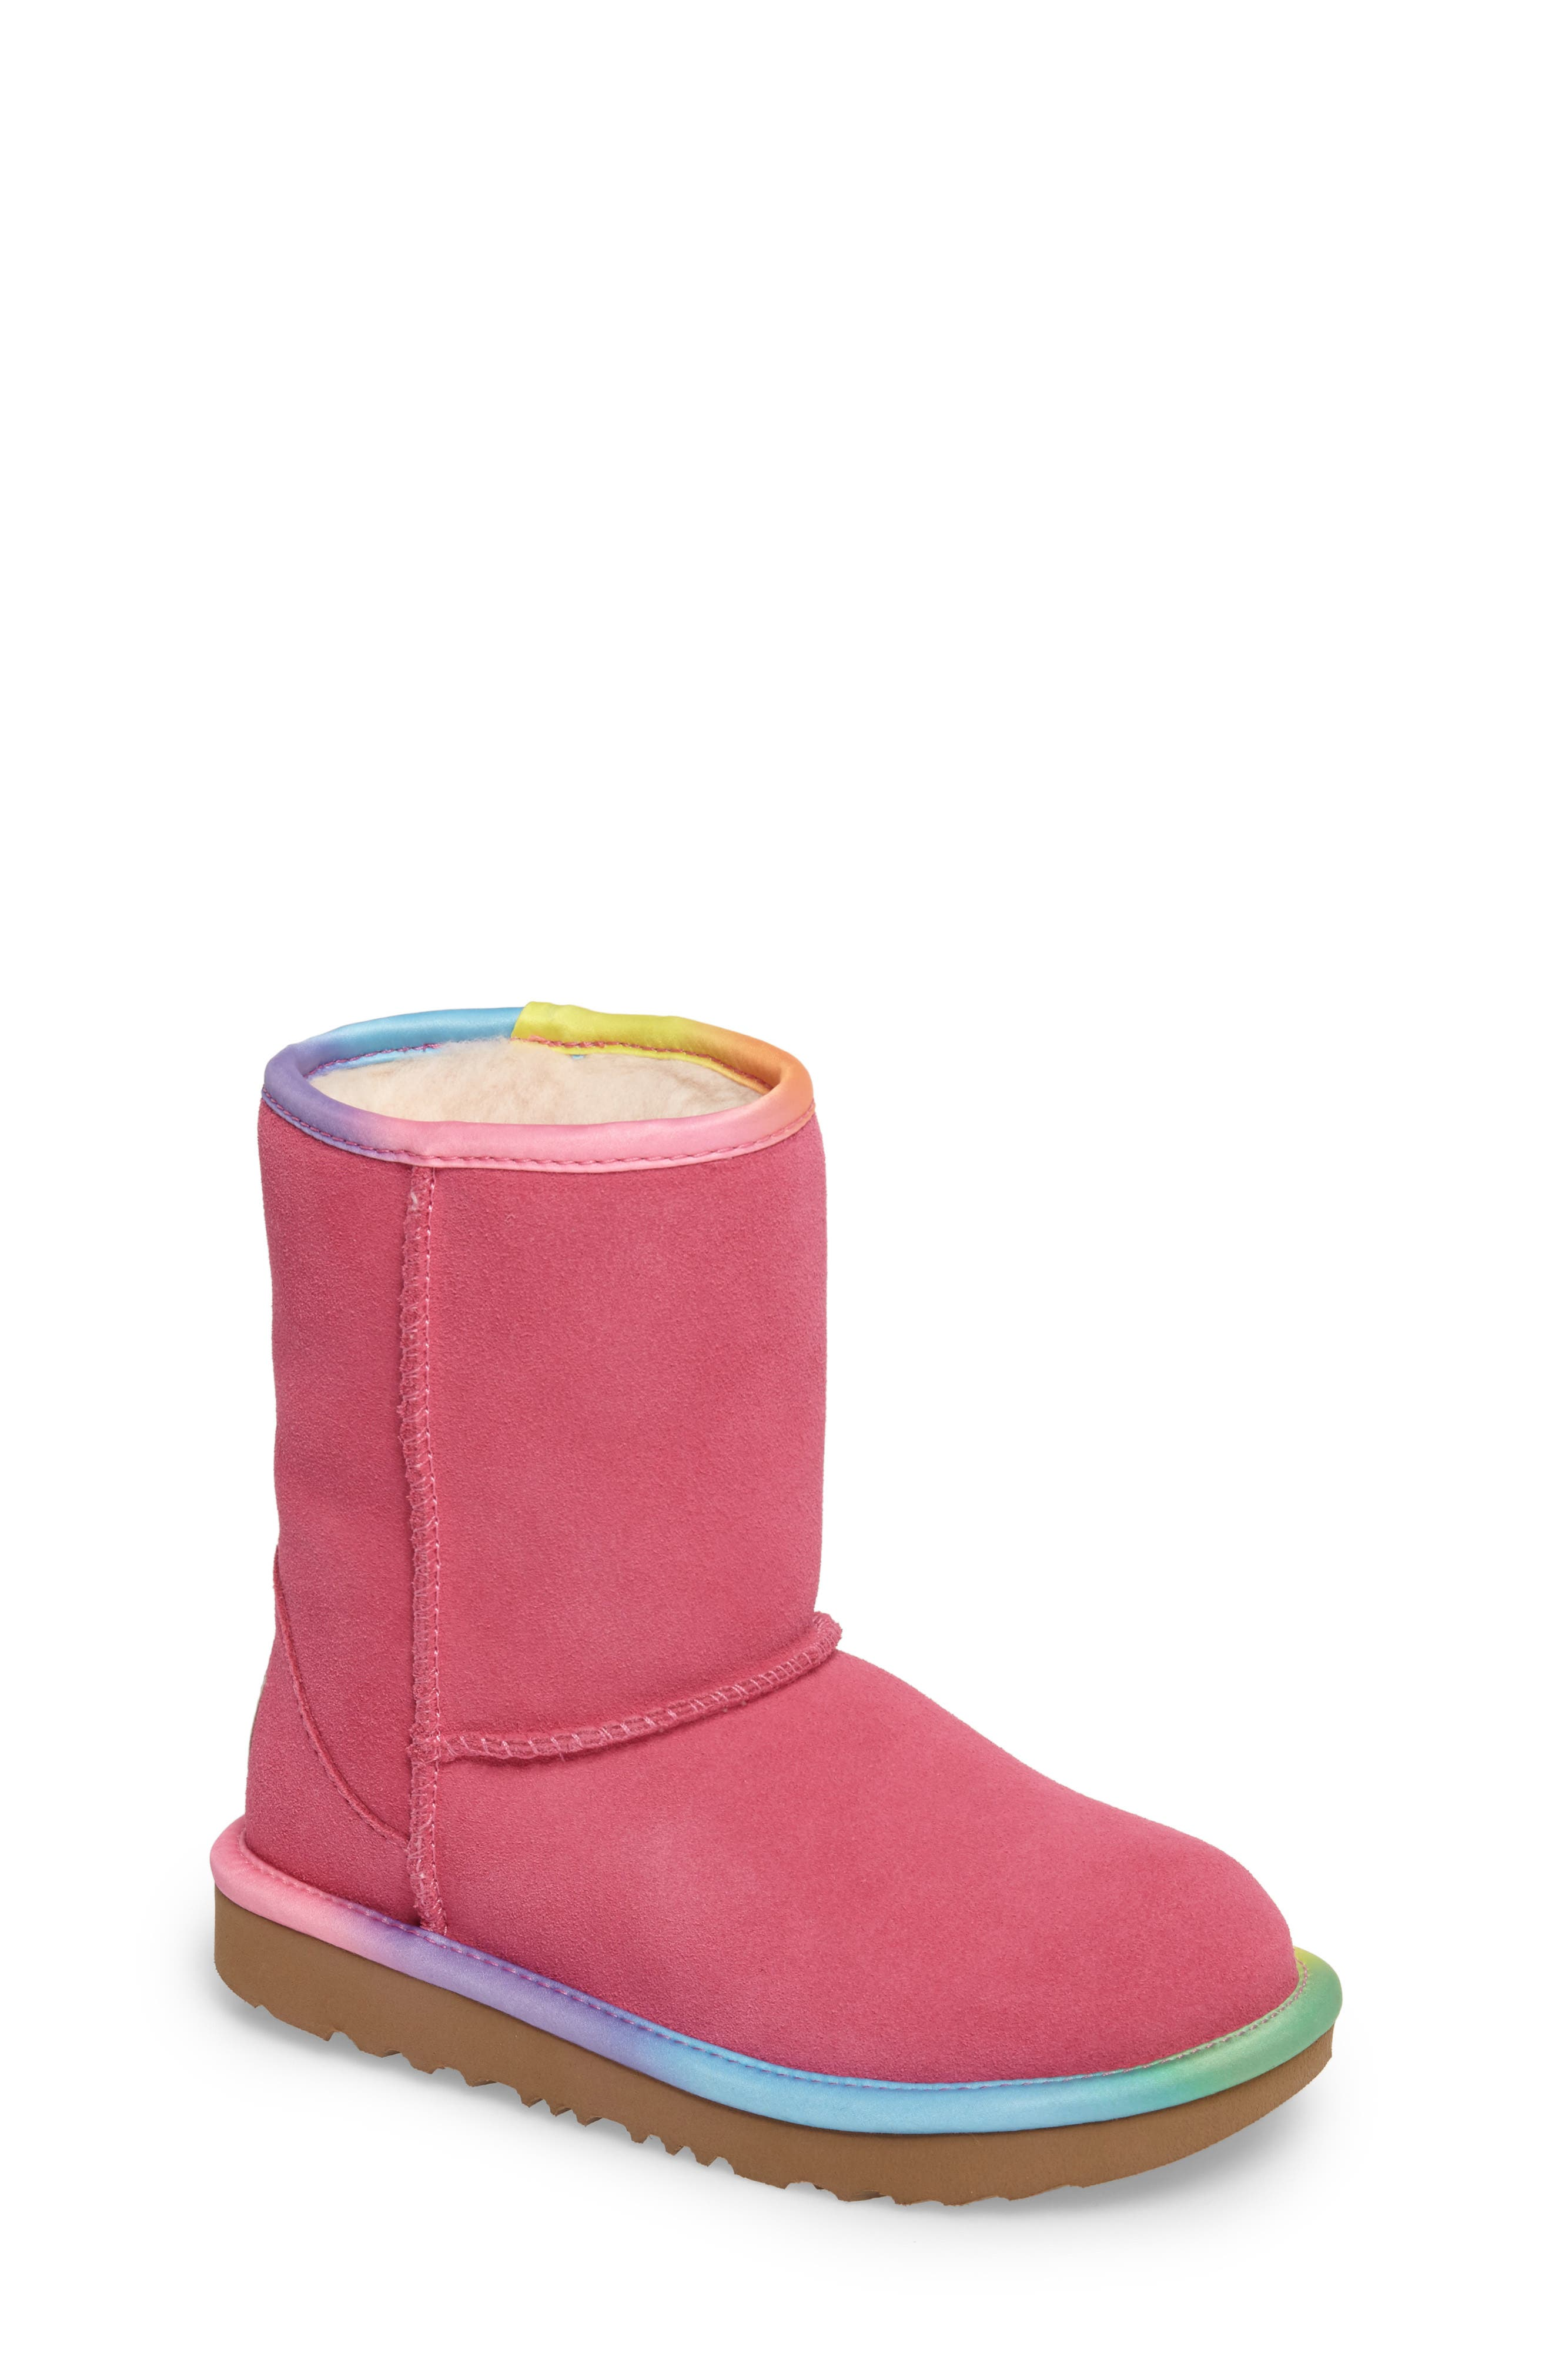 UGG® Classic Short II Water-Resistant Genuine Shearling Rainbow Boot (Walker, Toddler, Little Kid & Big Kid)